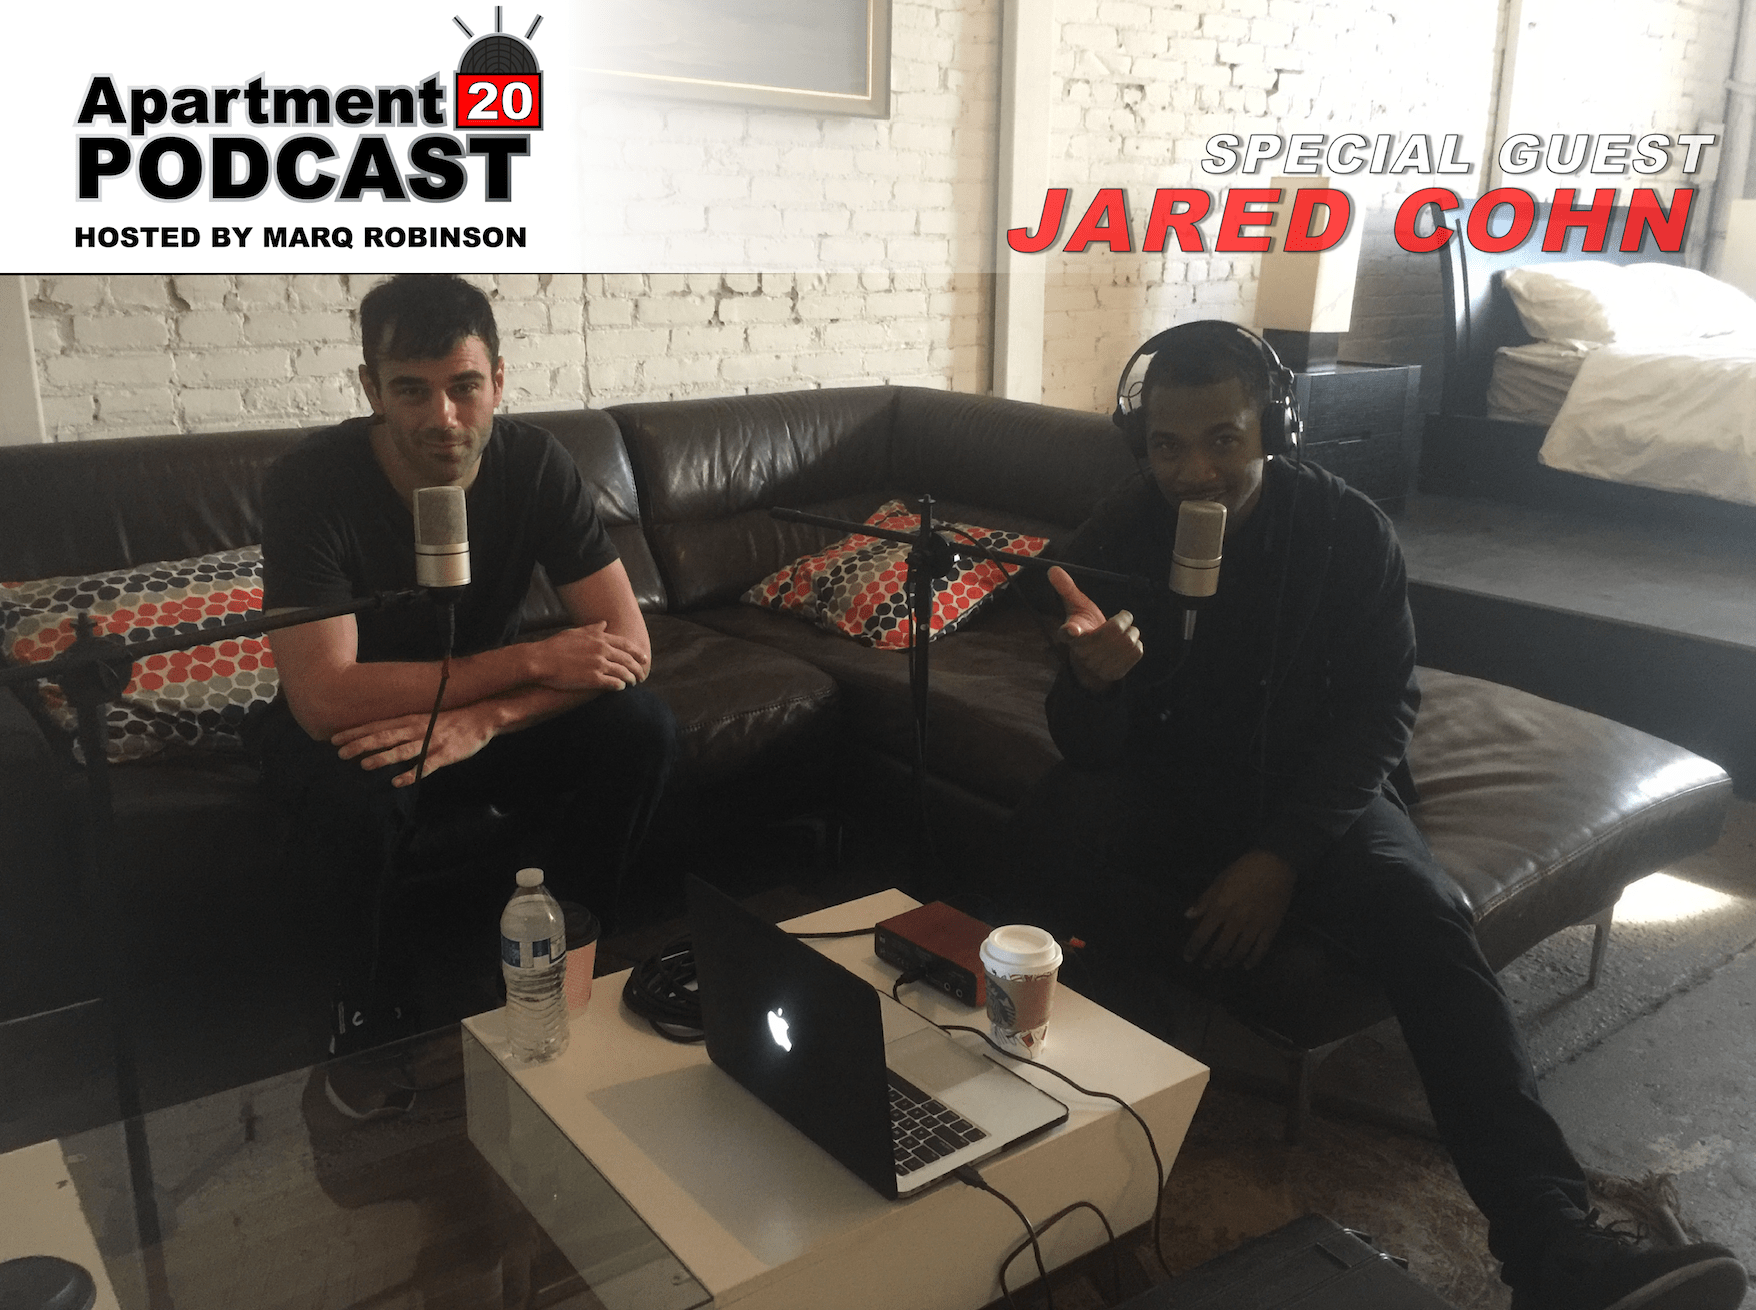 Apartment 20 Podcast: Jared Cohn